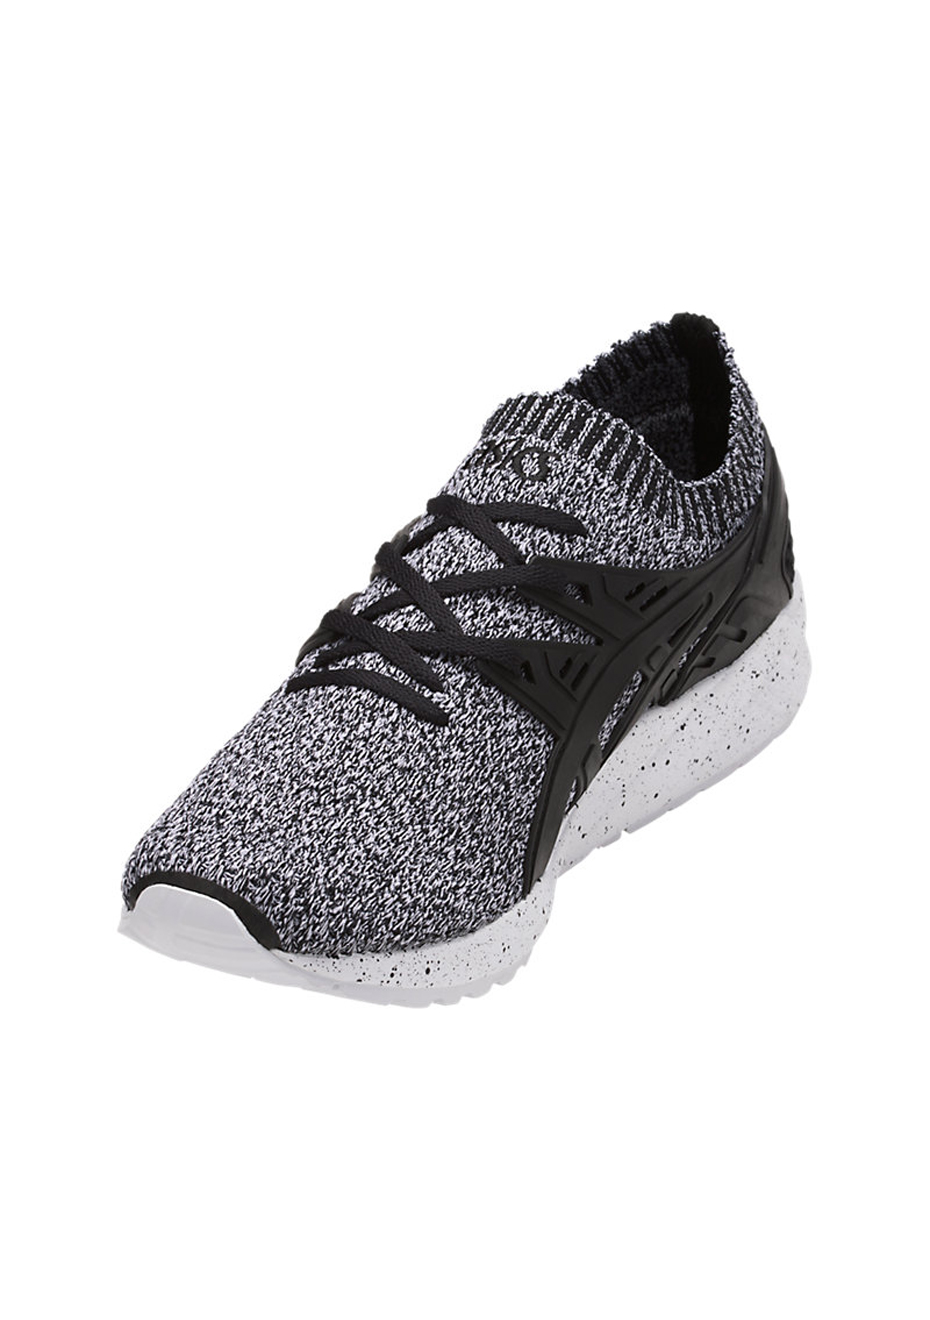 Asics Gel Kayano Trainer Knit Unisex